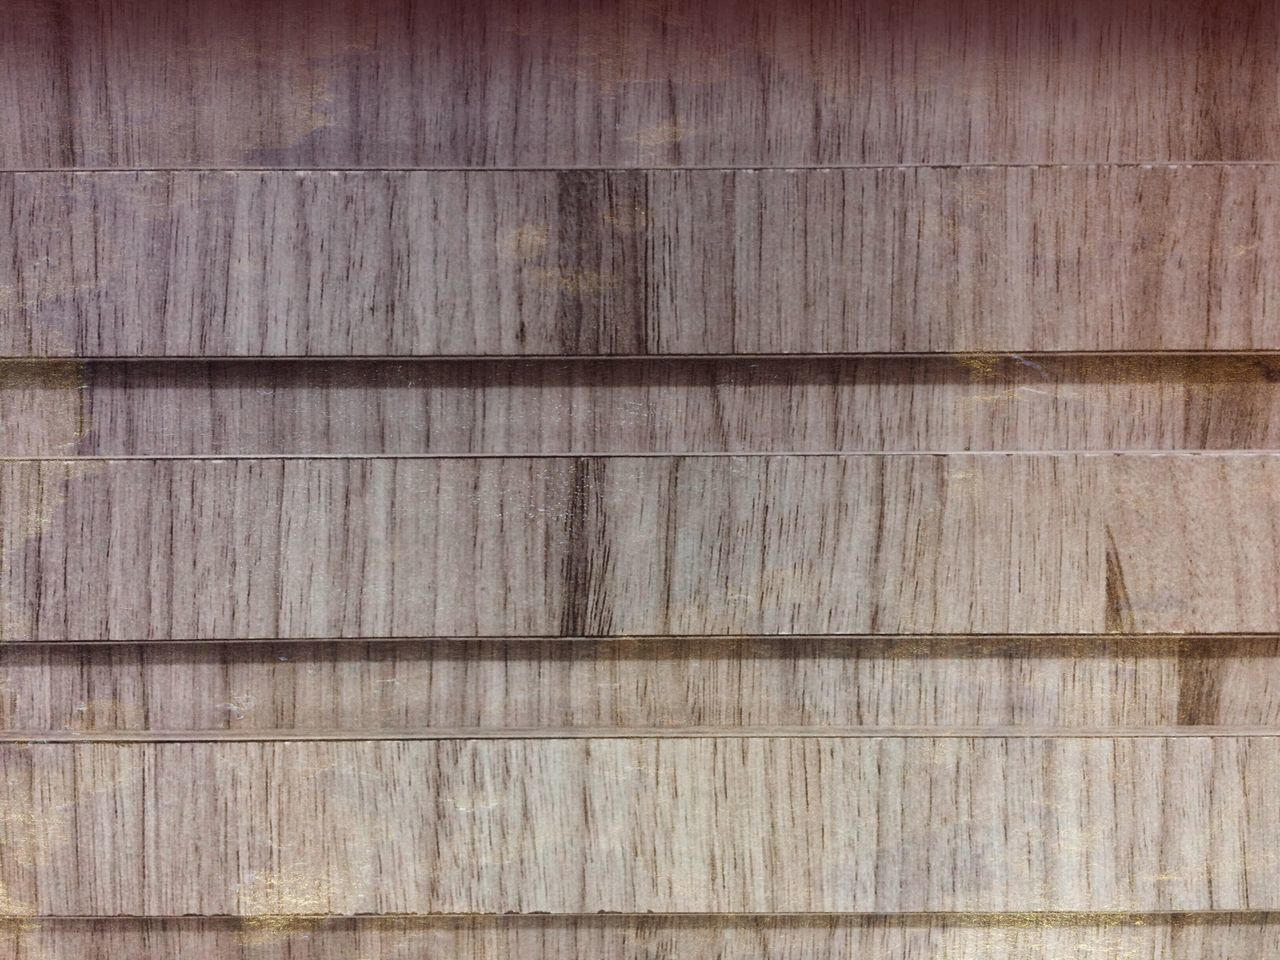 Texture and wood abstract. Wood - Material Backgrounds Pattern Plank Wood Grain Hardwood Textured  Wood Paneling Brown Timber Material Full Frame Lumber Industry No People Rough Hardwood Floor Knotted Wood Nature Old-fashioned Bamboo - Material Textured  Textures And Surfaces Texture Wood WoodLand